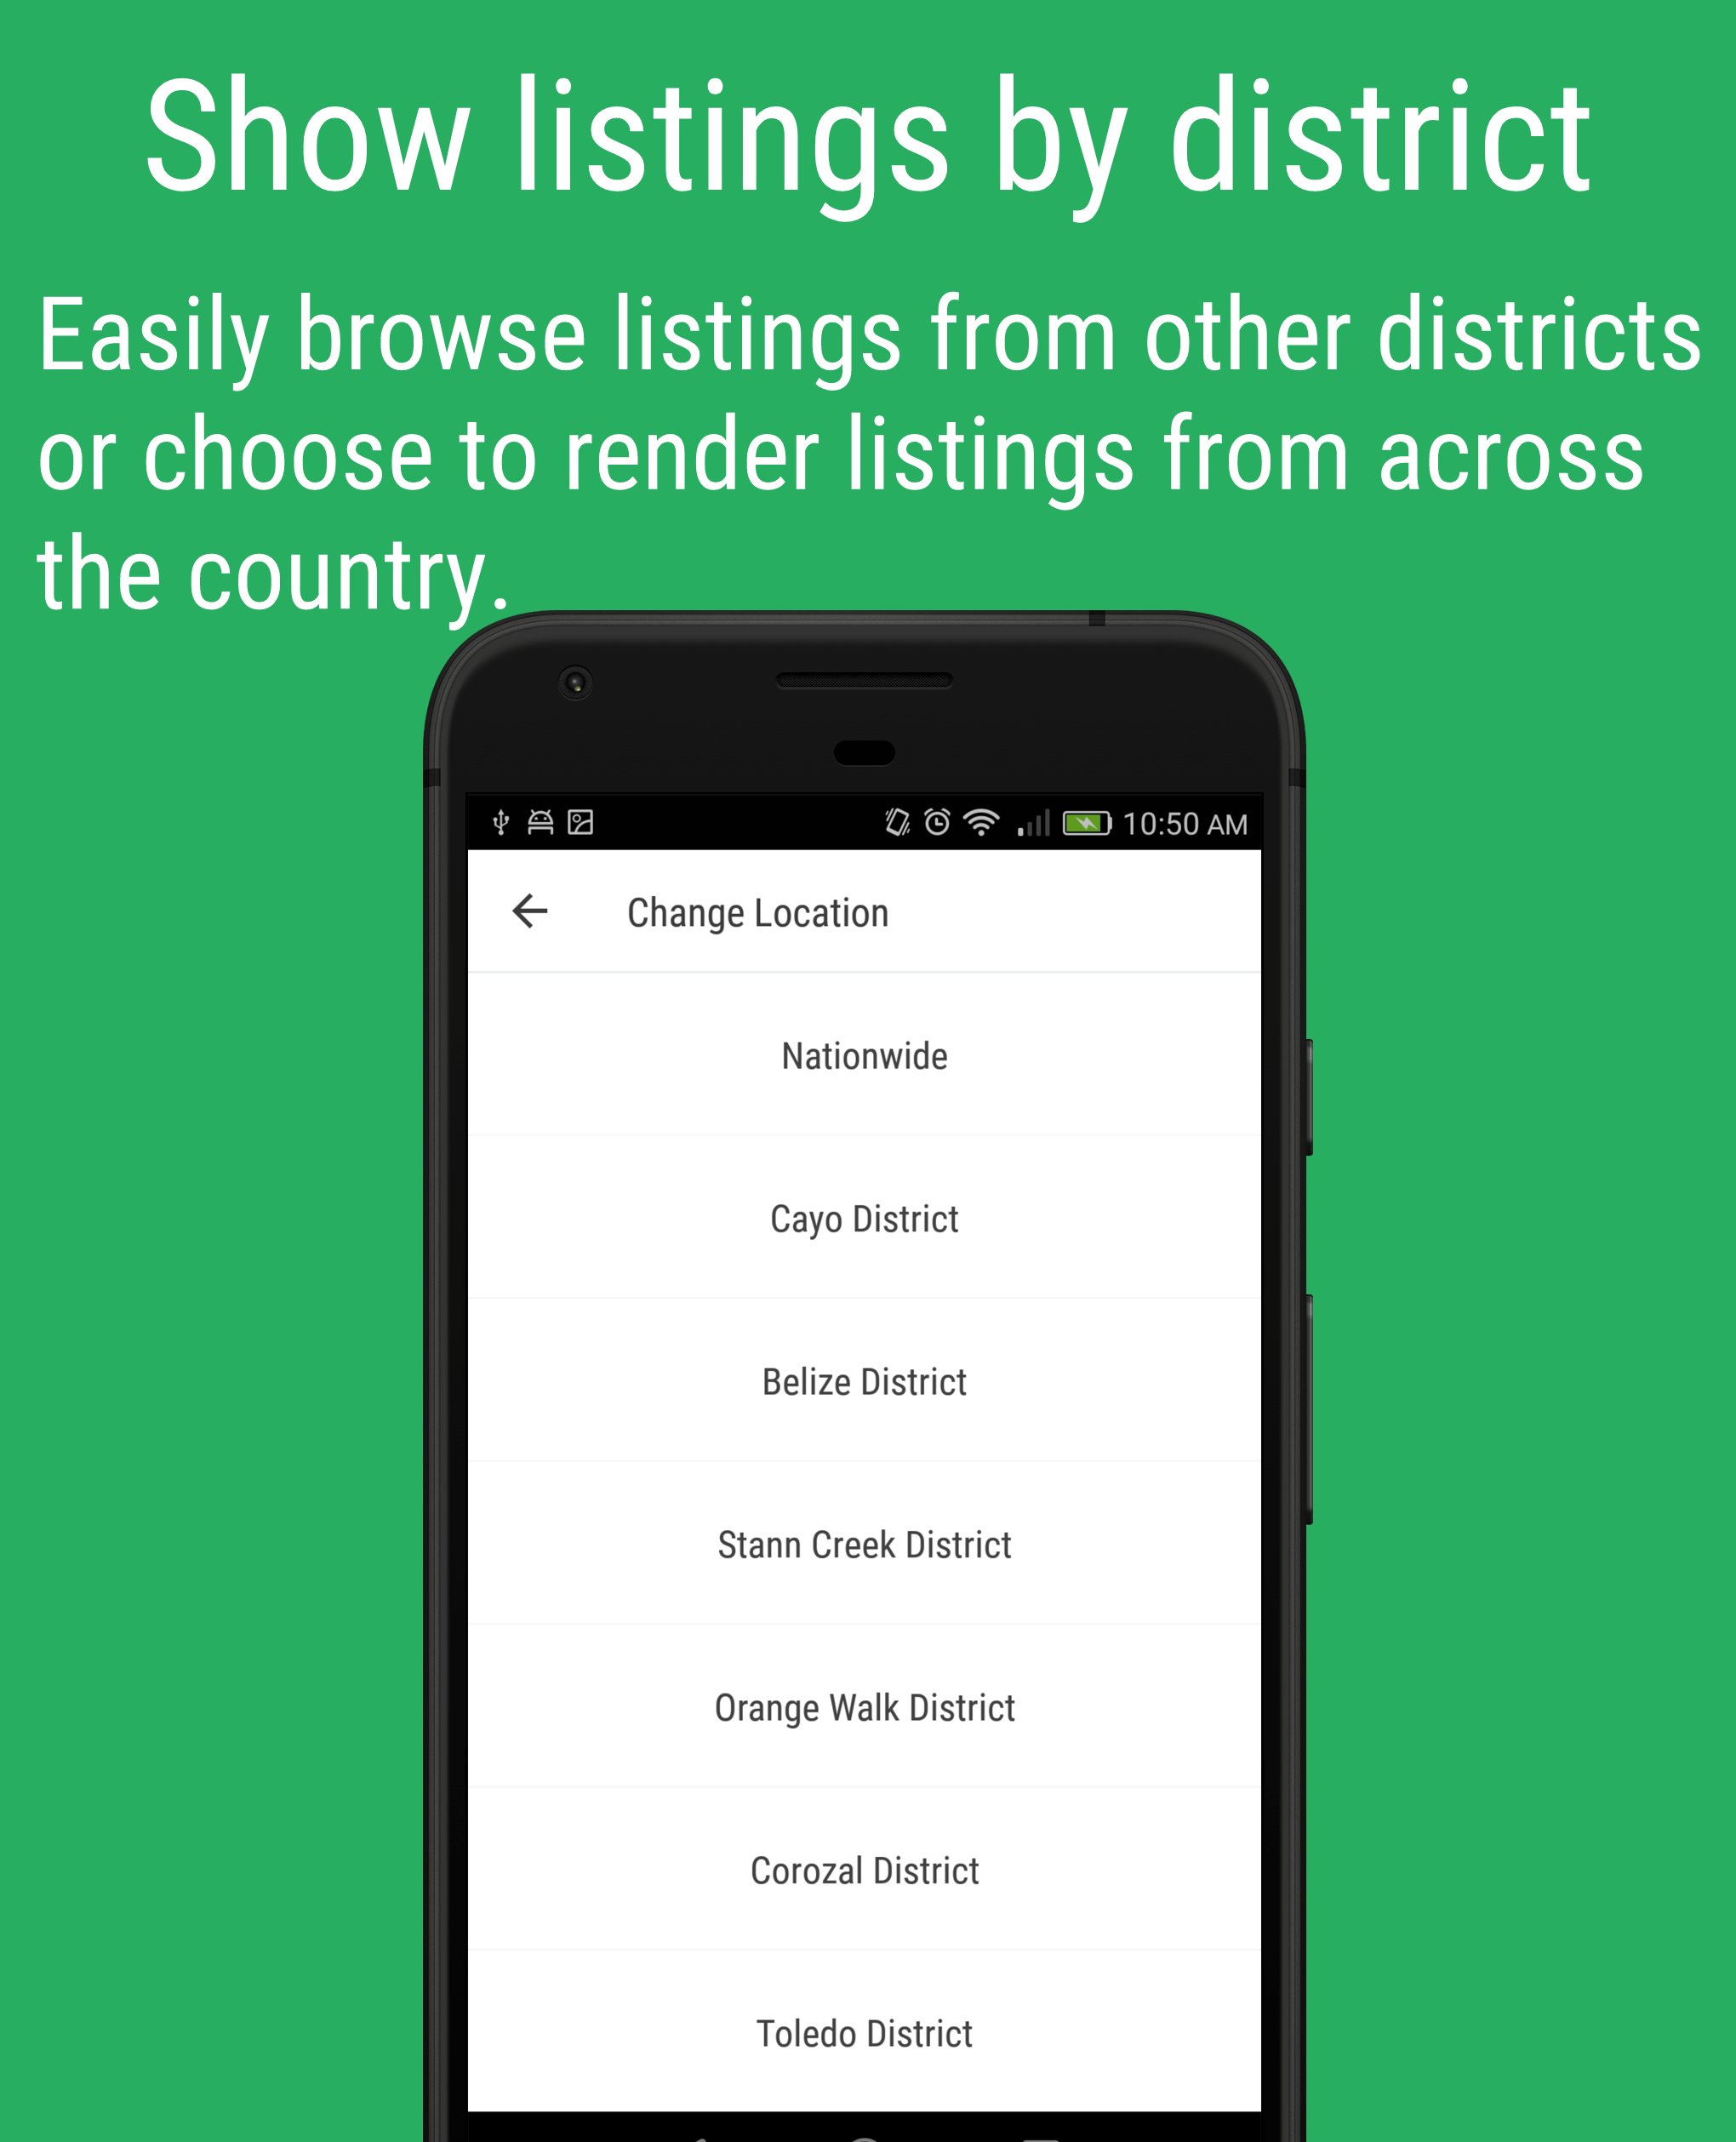 Showing listing by disctrics